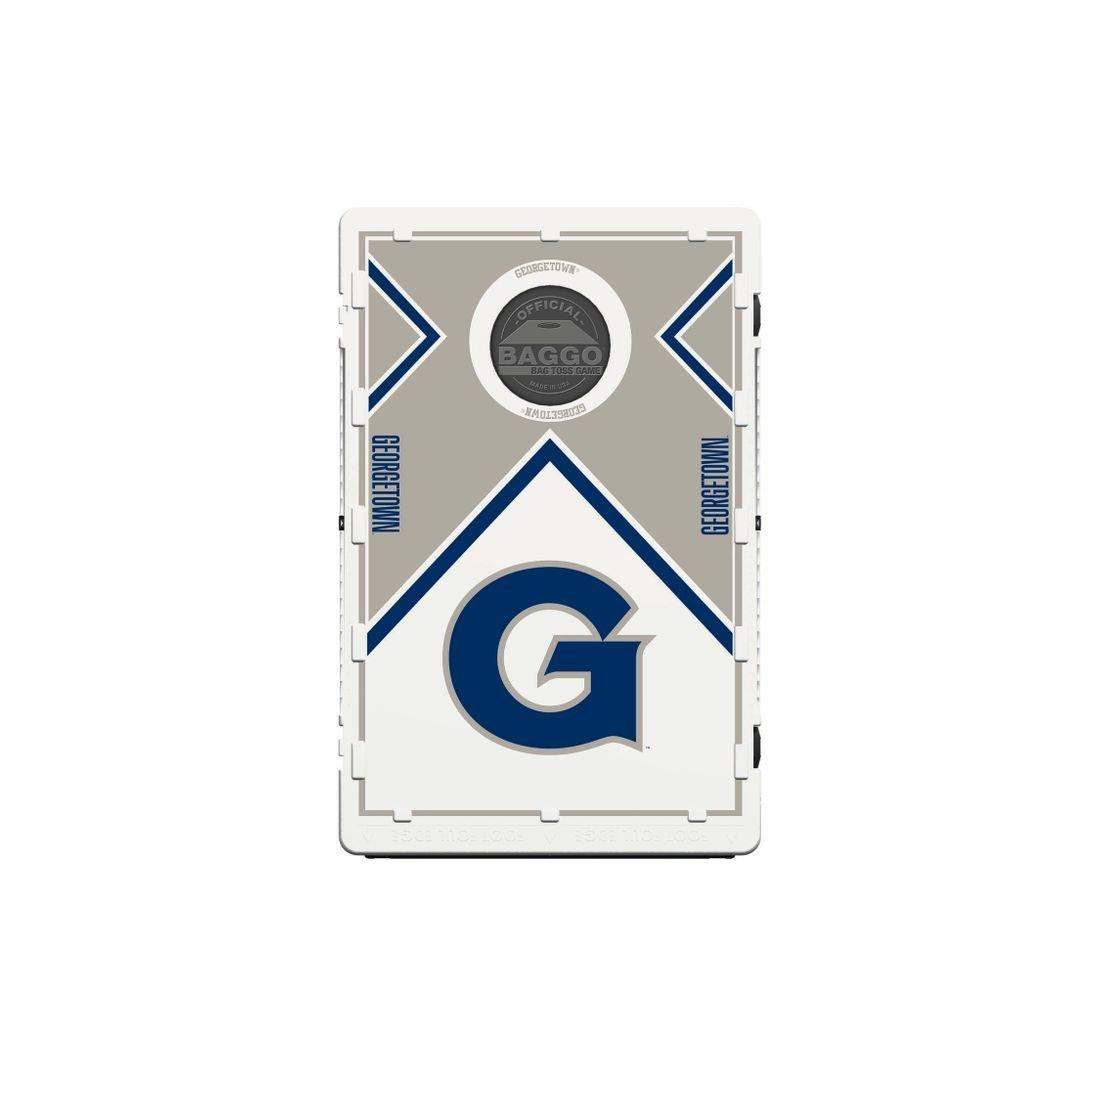 Georgetown Hoyas Baggo Bean Bag Toss Cornhole Game Vintage Design